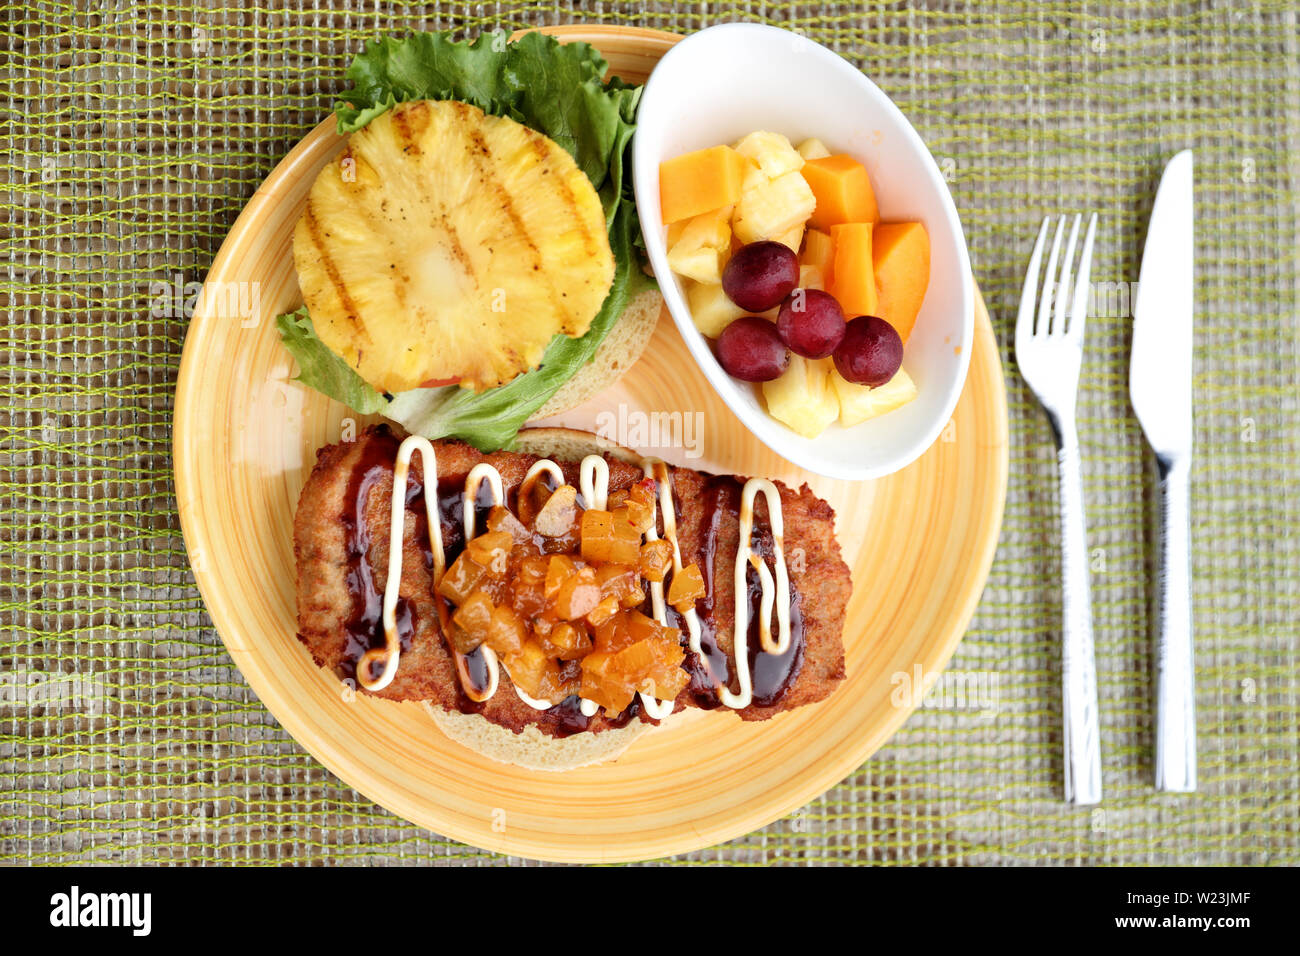 Hawaiian japanese fusion food, Hawaii culture. Restaurant plate closeup of karaage chicken burger, japanese fried chicken specialty with chutney, mayonnais, grilled pineapple and fresh fruits side. - Stock Image